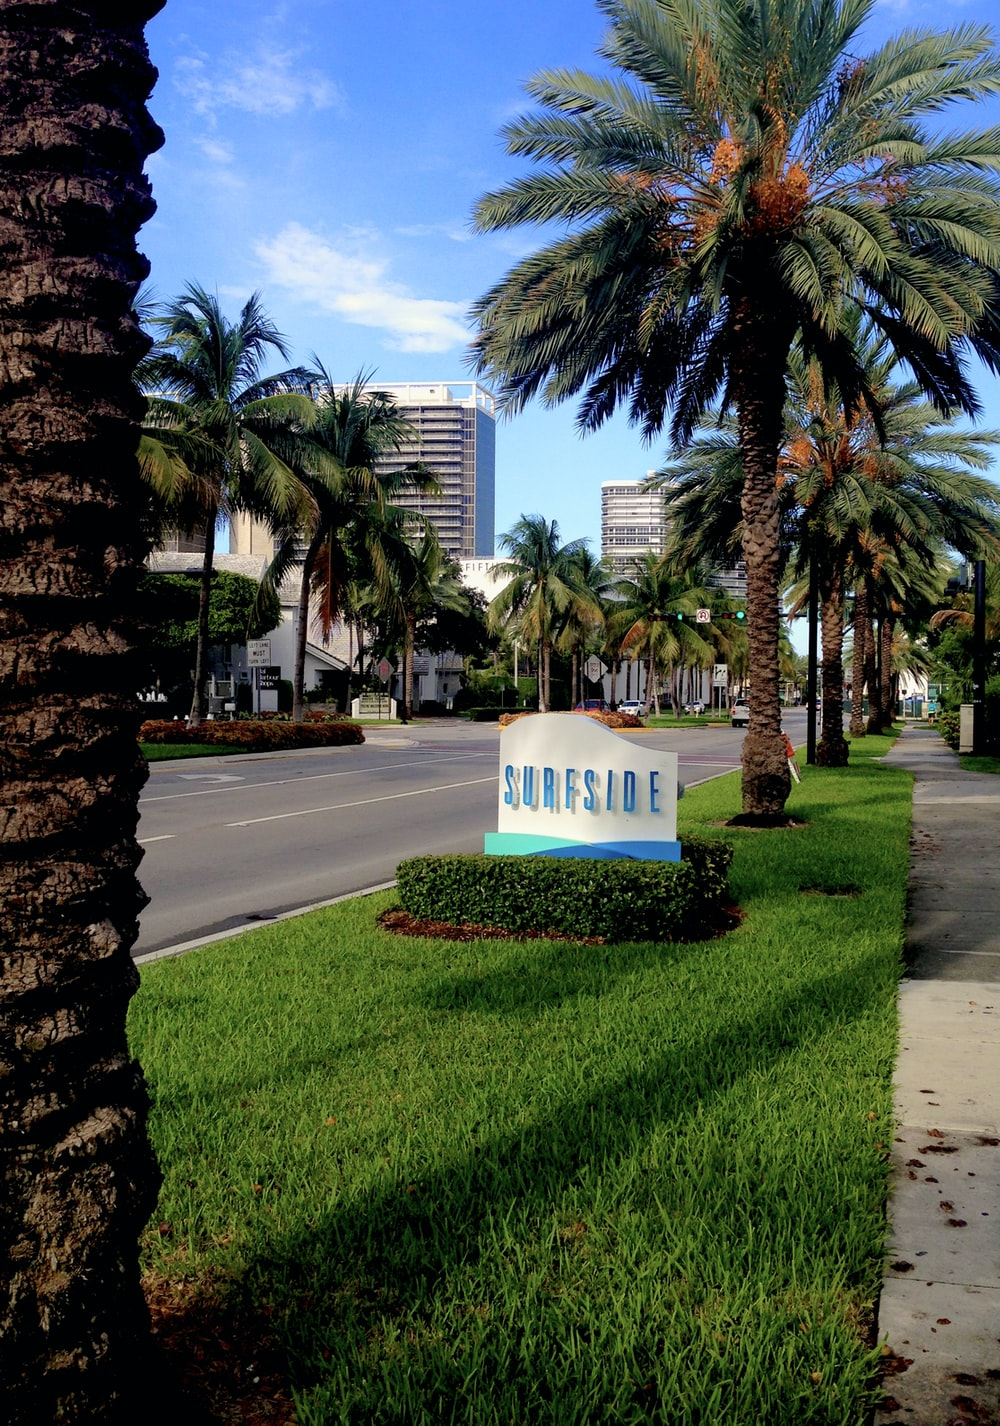 white and blue concrete building near palm trees during daytime